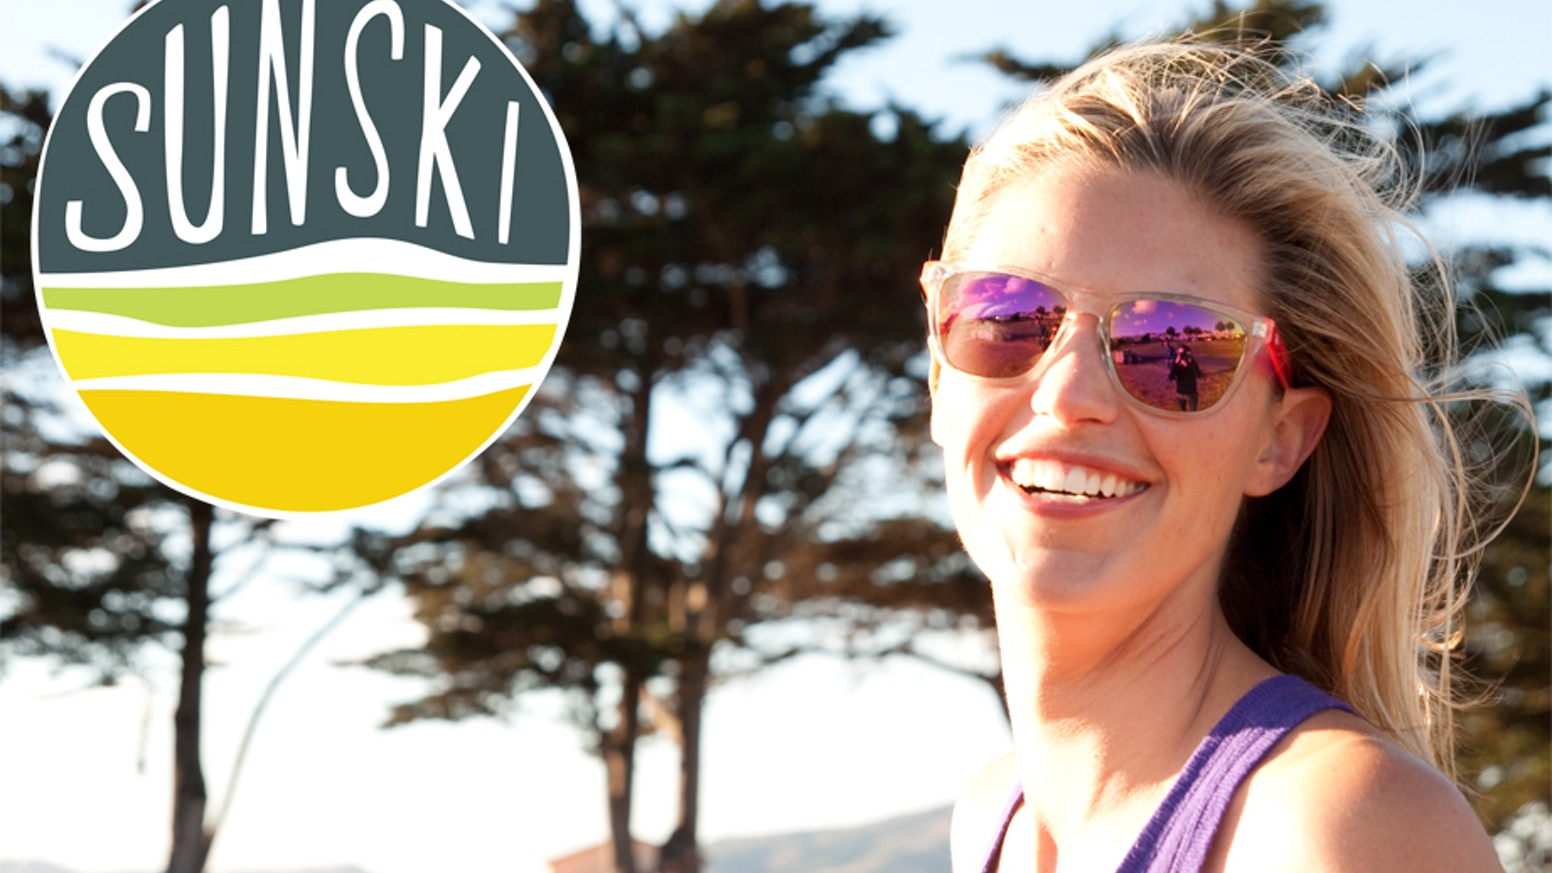 41a6560fc3 Sunski Sunglasses by Tom and Michael — Kickstarter